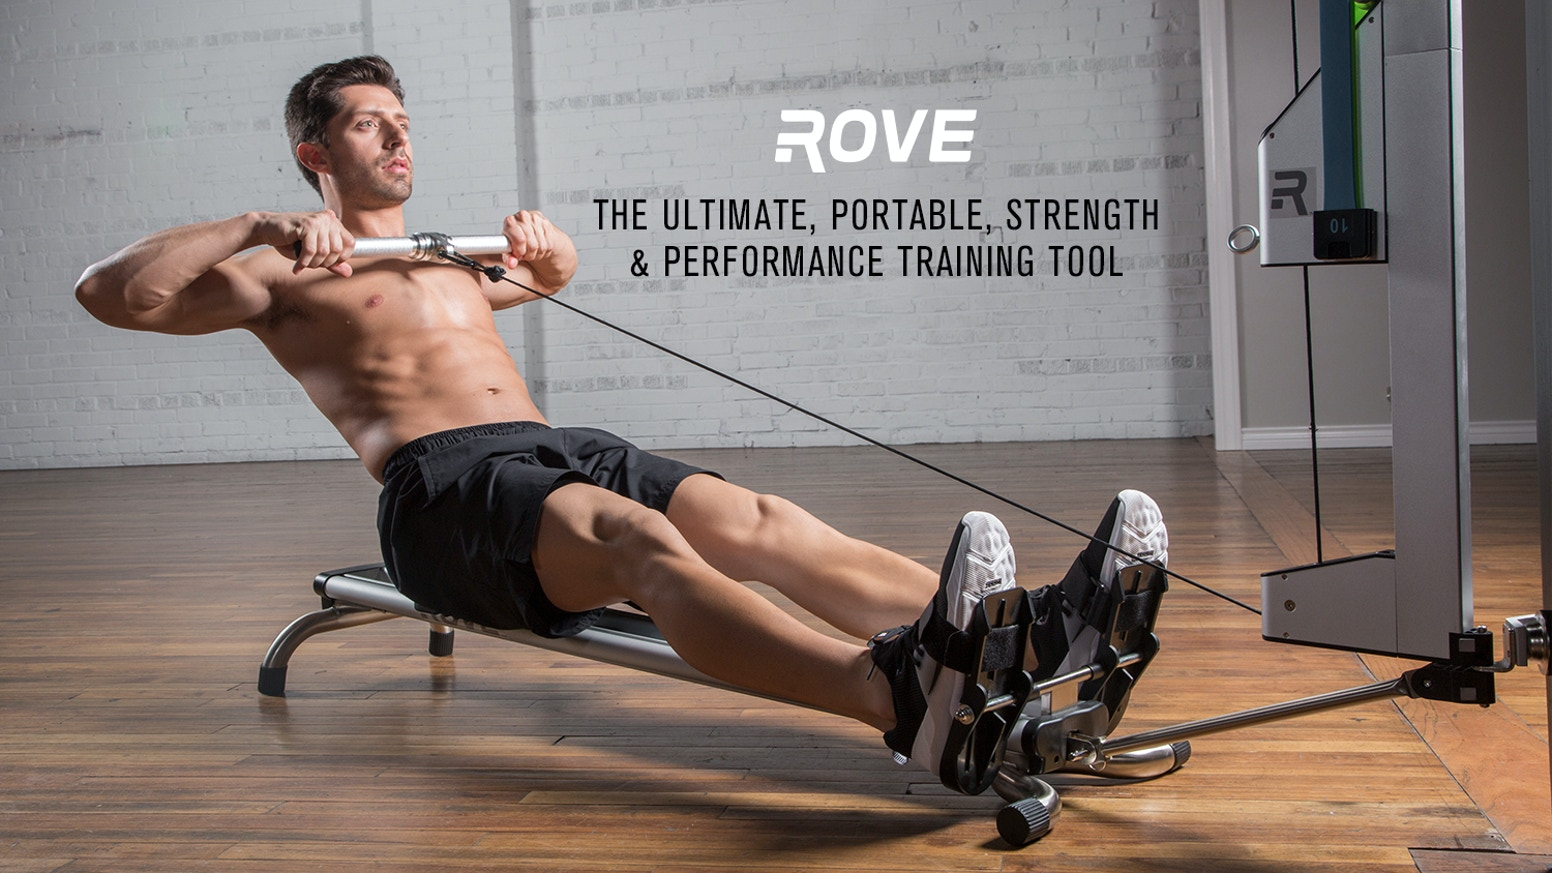 Ultimate, portable full-body strength and performance training tool uses time under tension technology to build lean muscle & burn fat. Find us on Indiegogo InDemand!